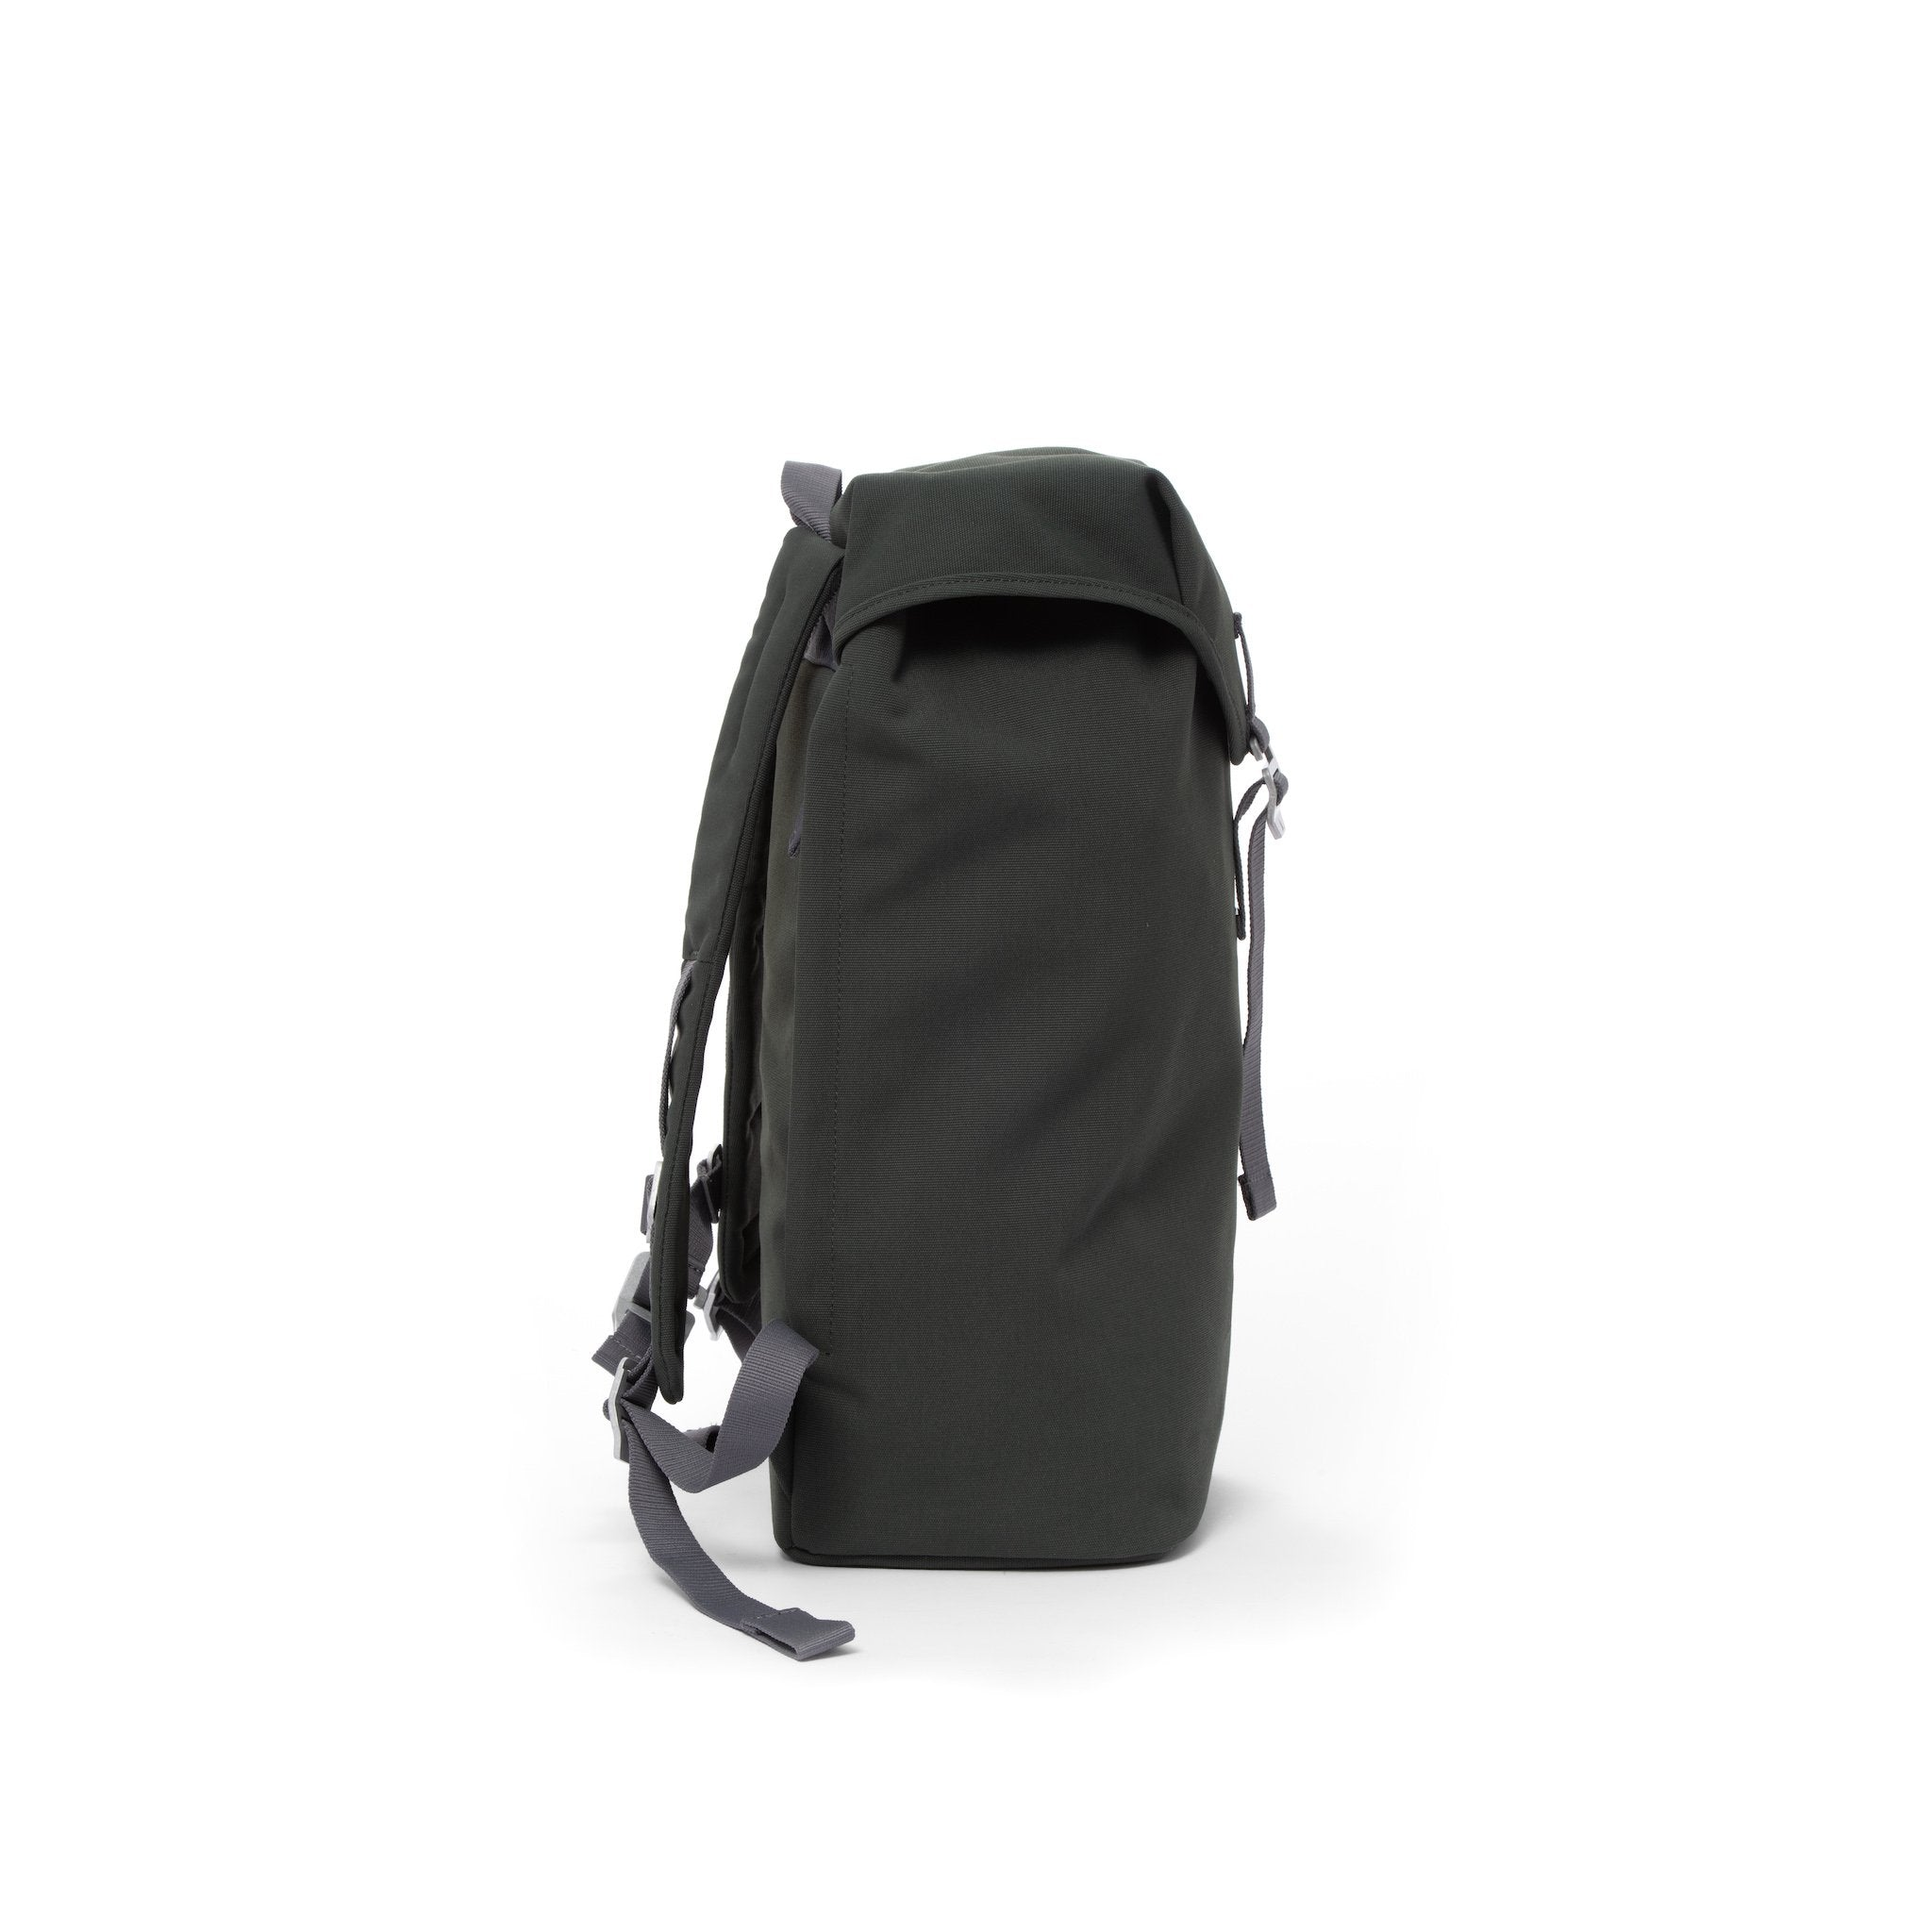 Grey waterproof backpack with flap and metal buckle.